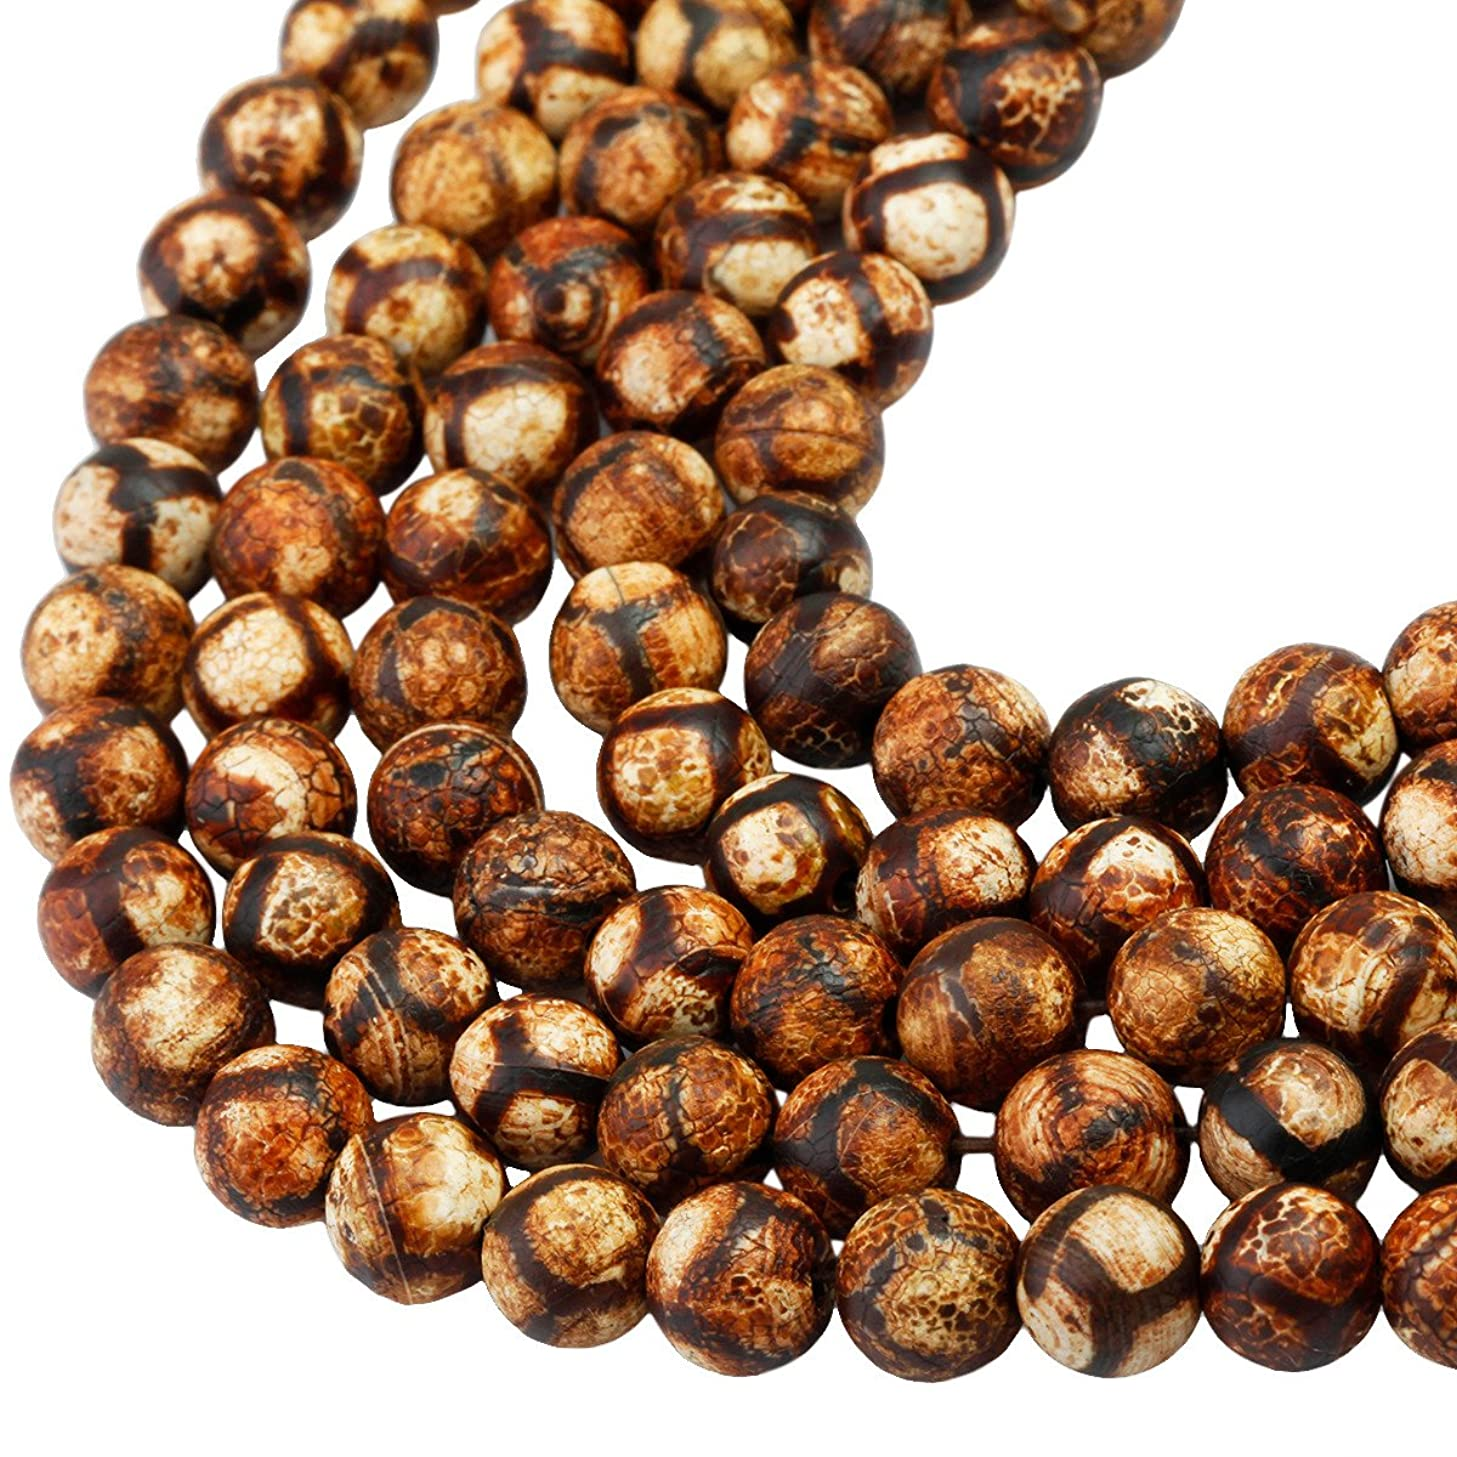 SUNYIK Vintage Brown/Tan Striped Agate Loose Bead Stone for Jewelry Making 8mm Round 14